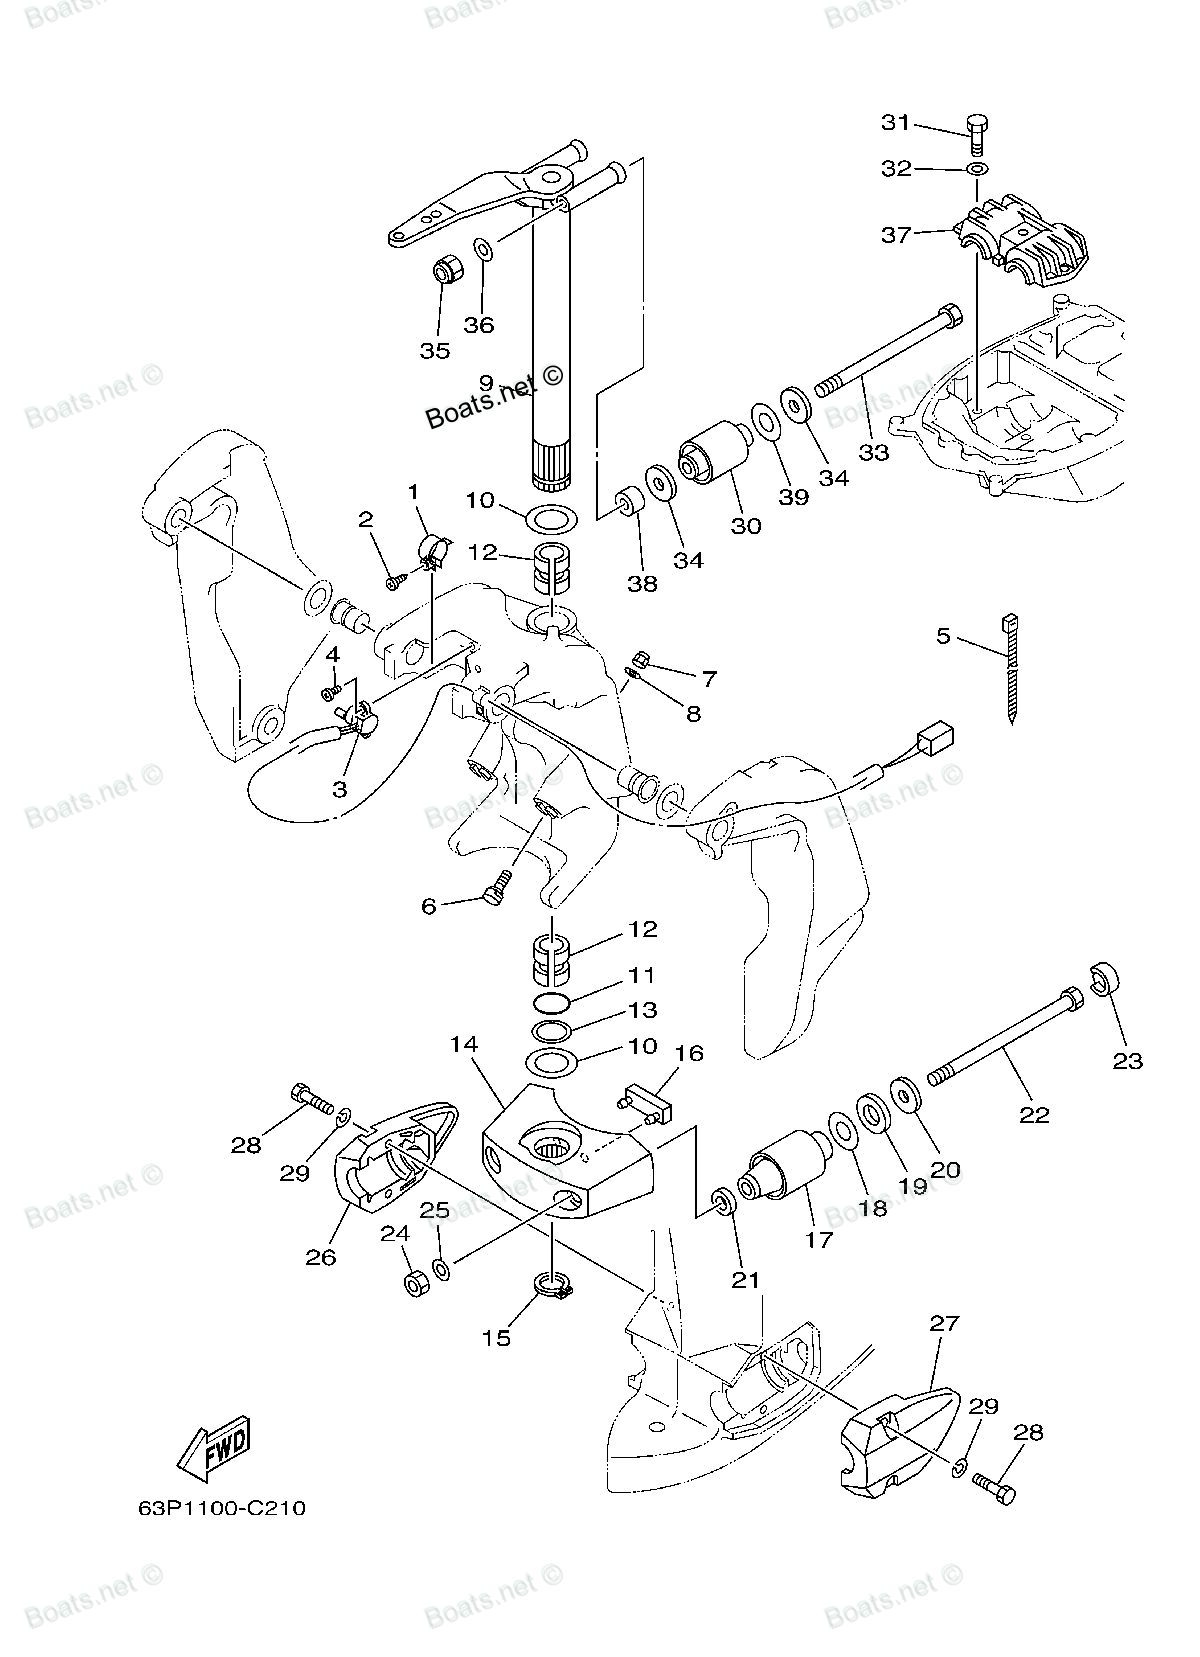 yamaha ox66 outboard wiring diagram 200 hp saltwater